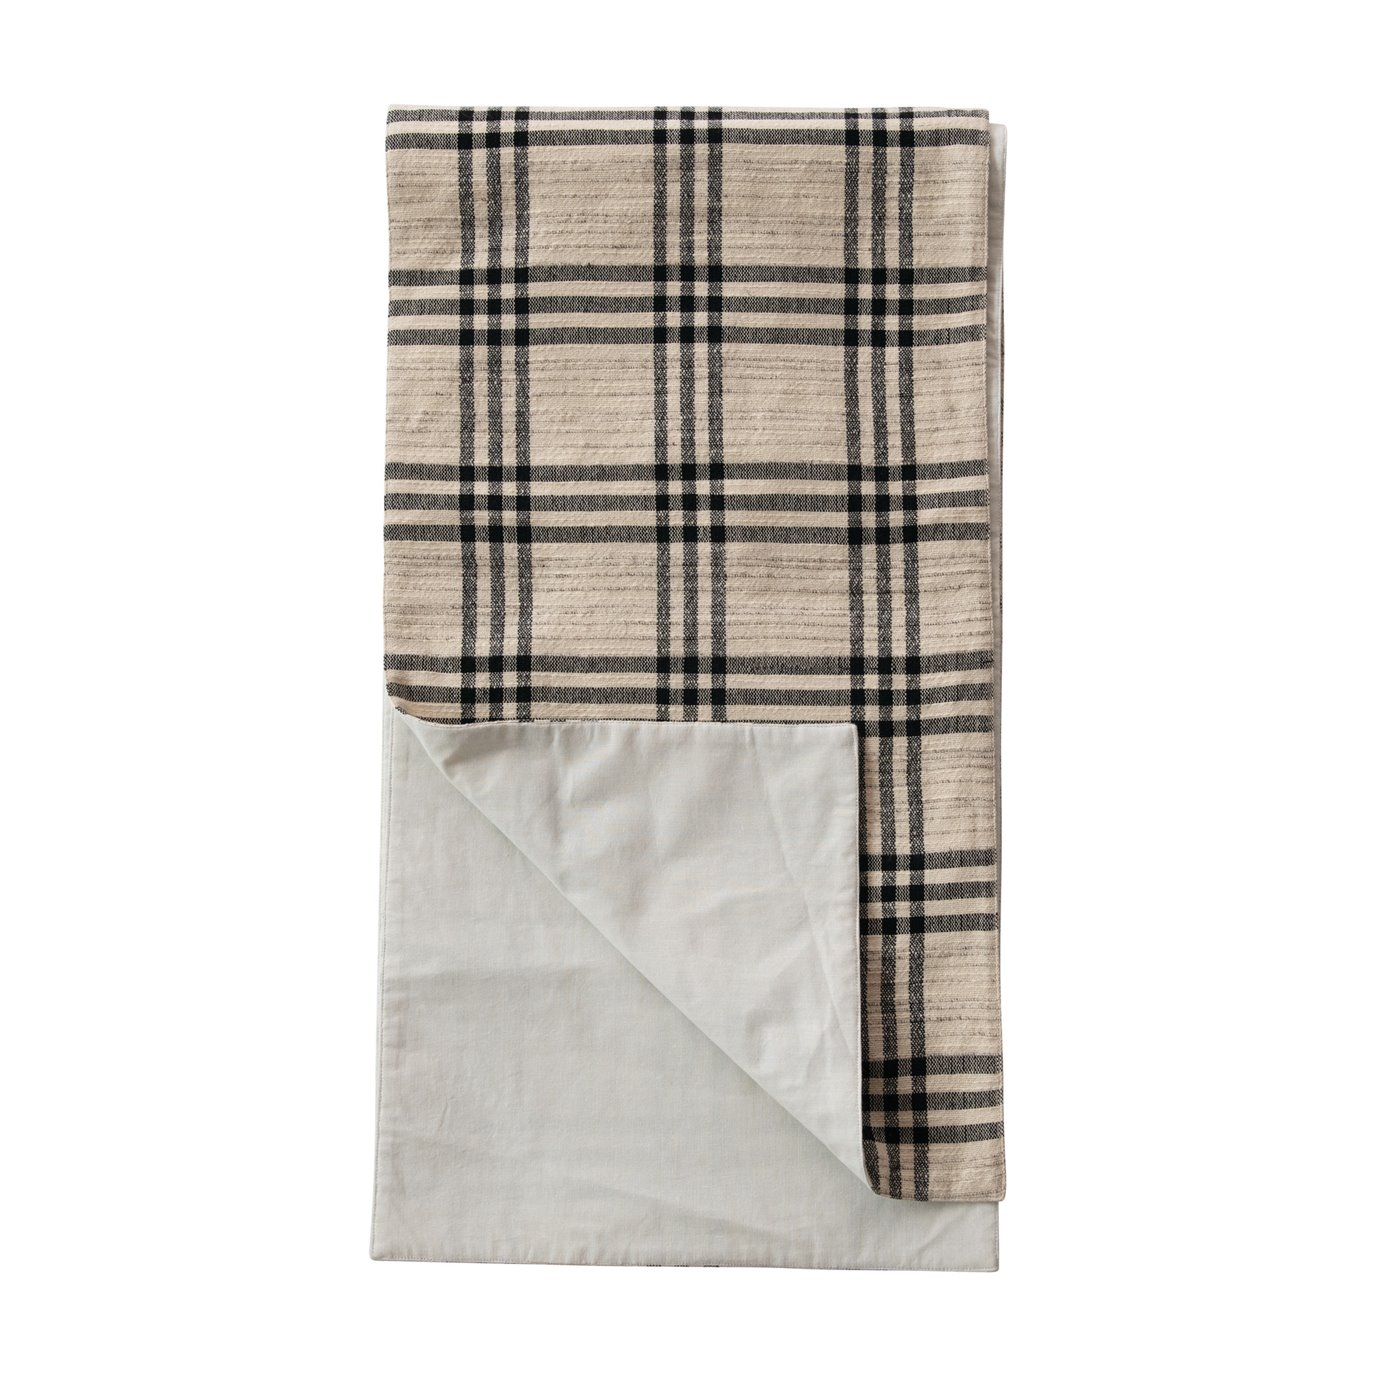 Black Plaid Woven Cotton and Wool Table Runner